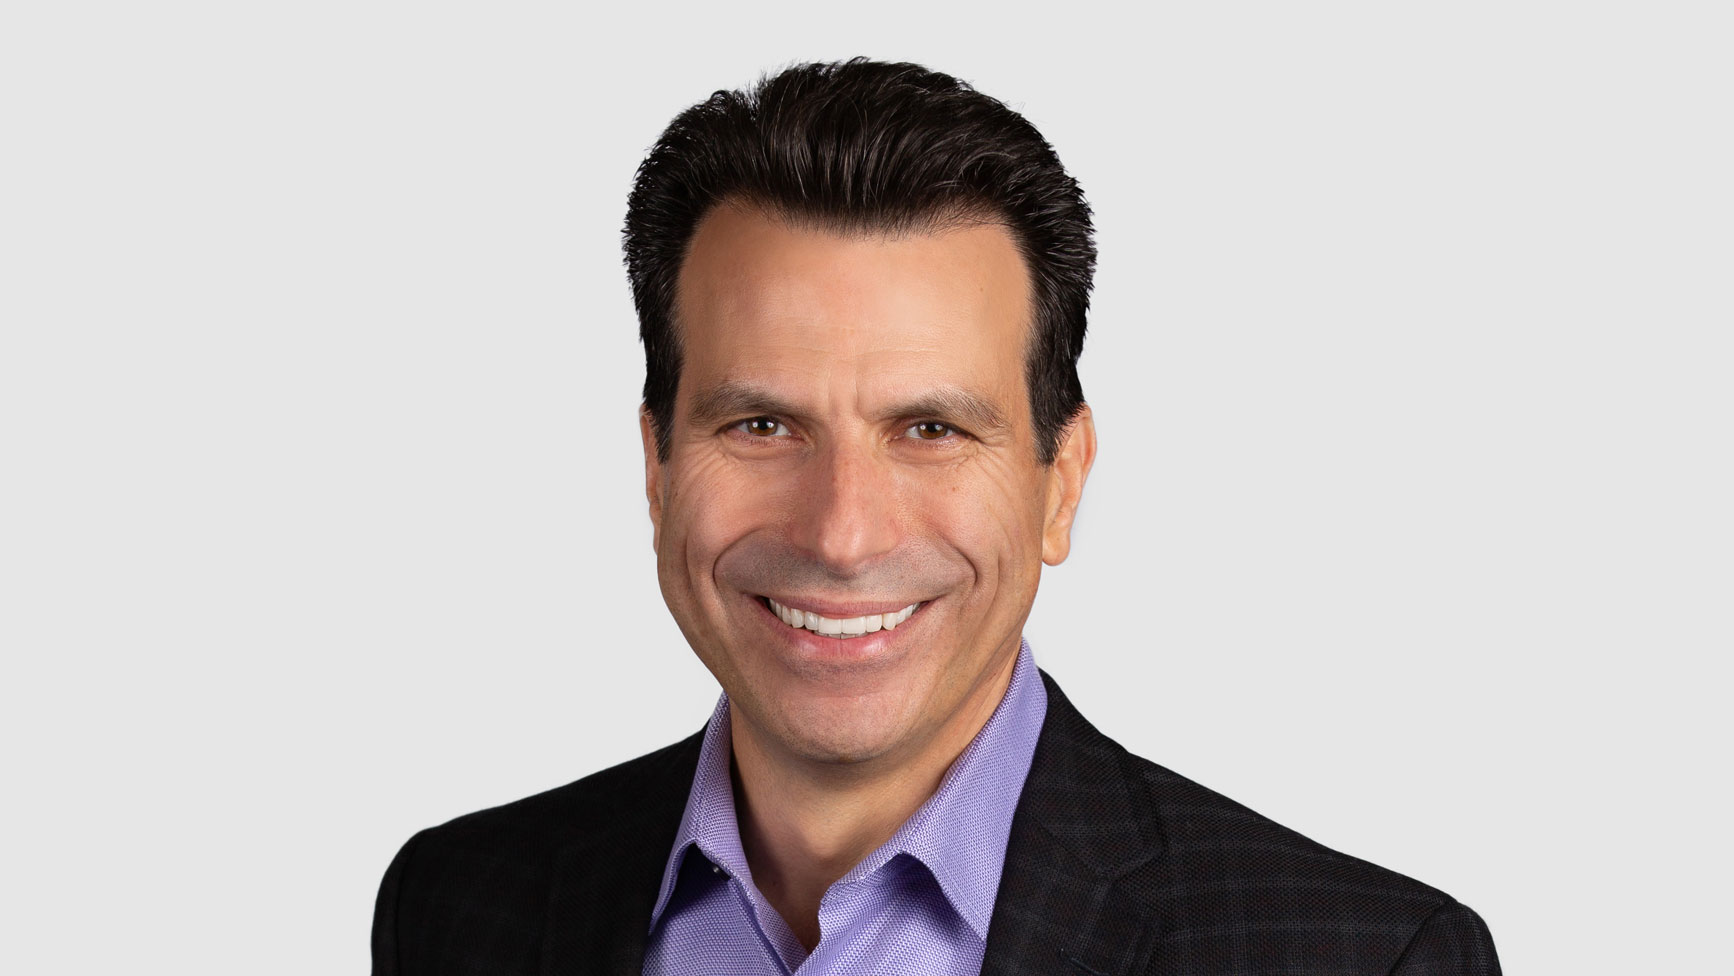 Andrew Anagnost, Autodesk President and CEO.